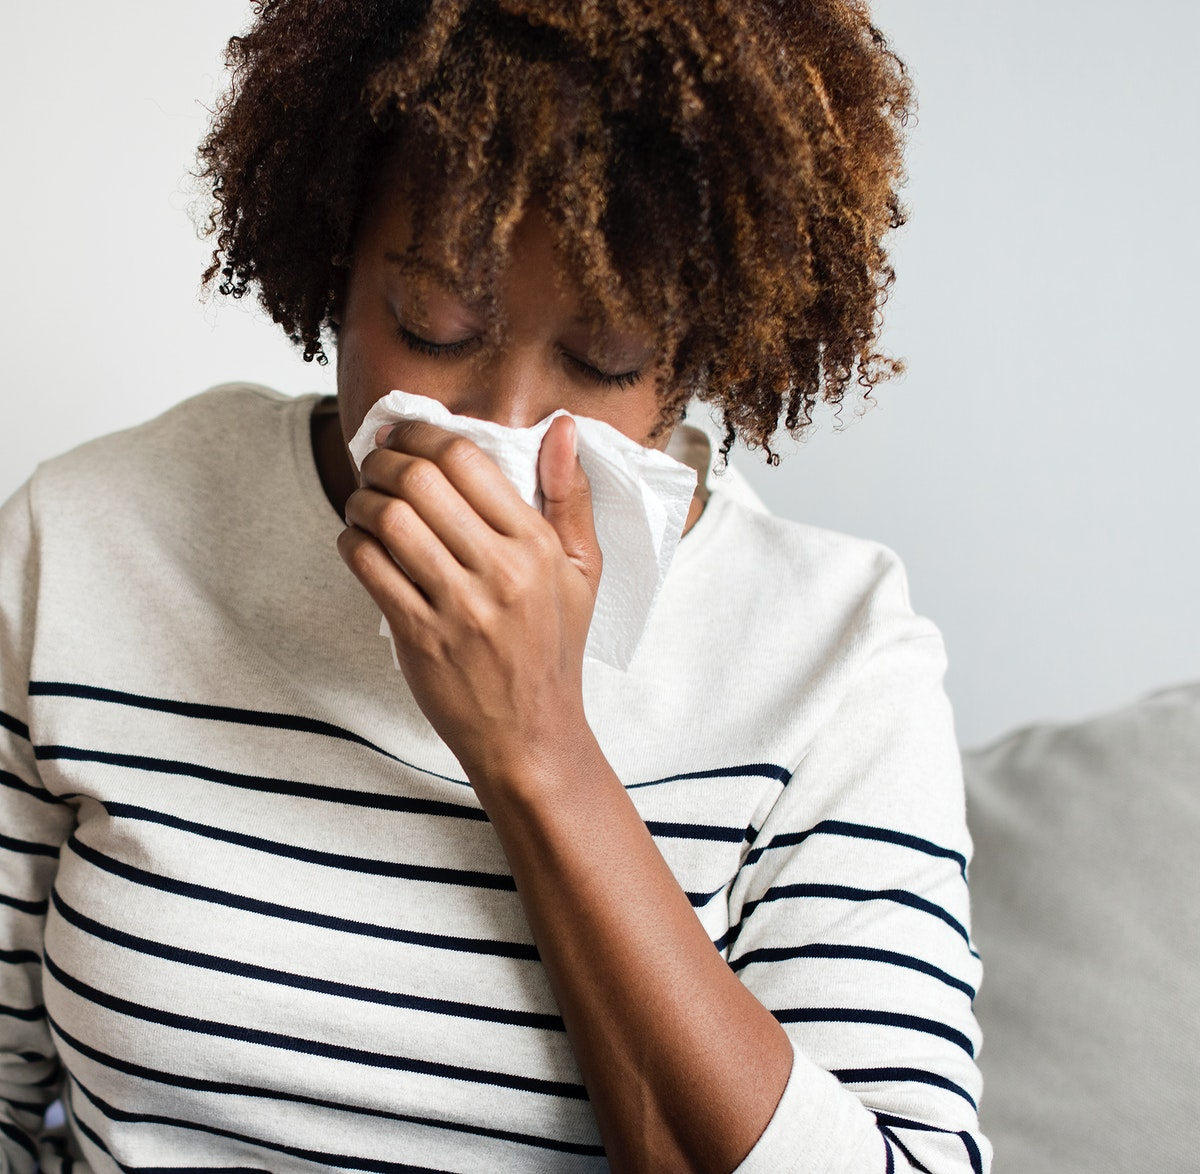 Woman sick at home on the couch